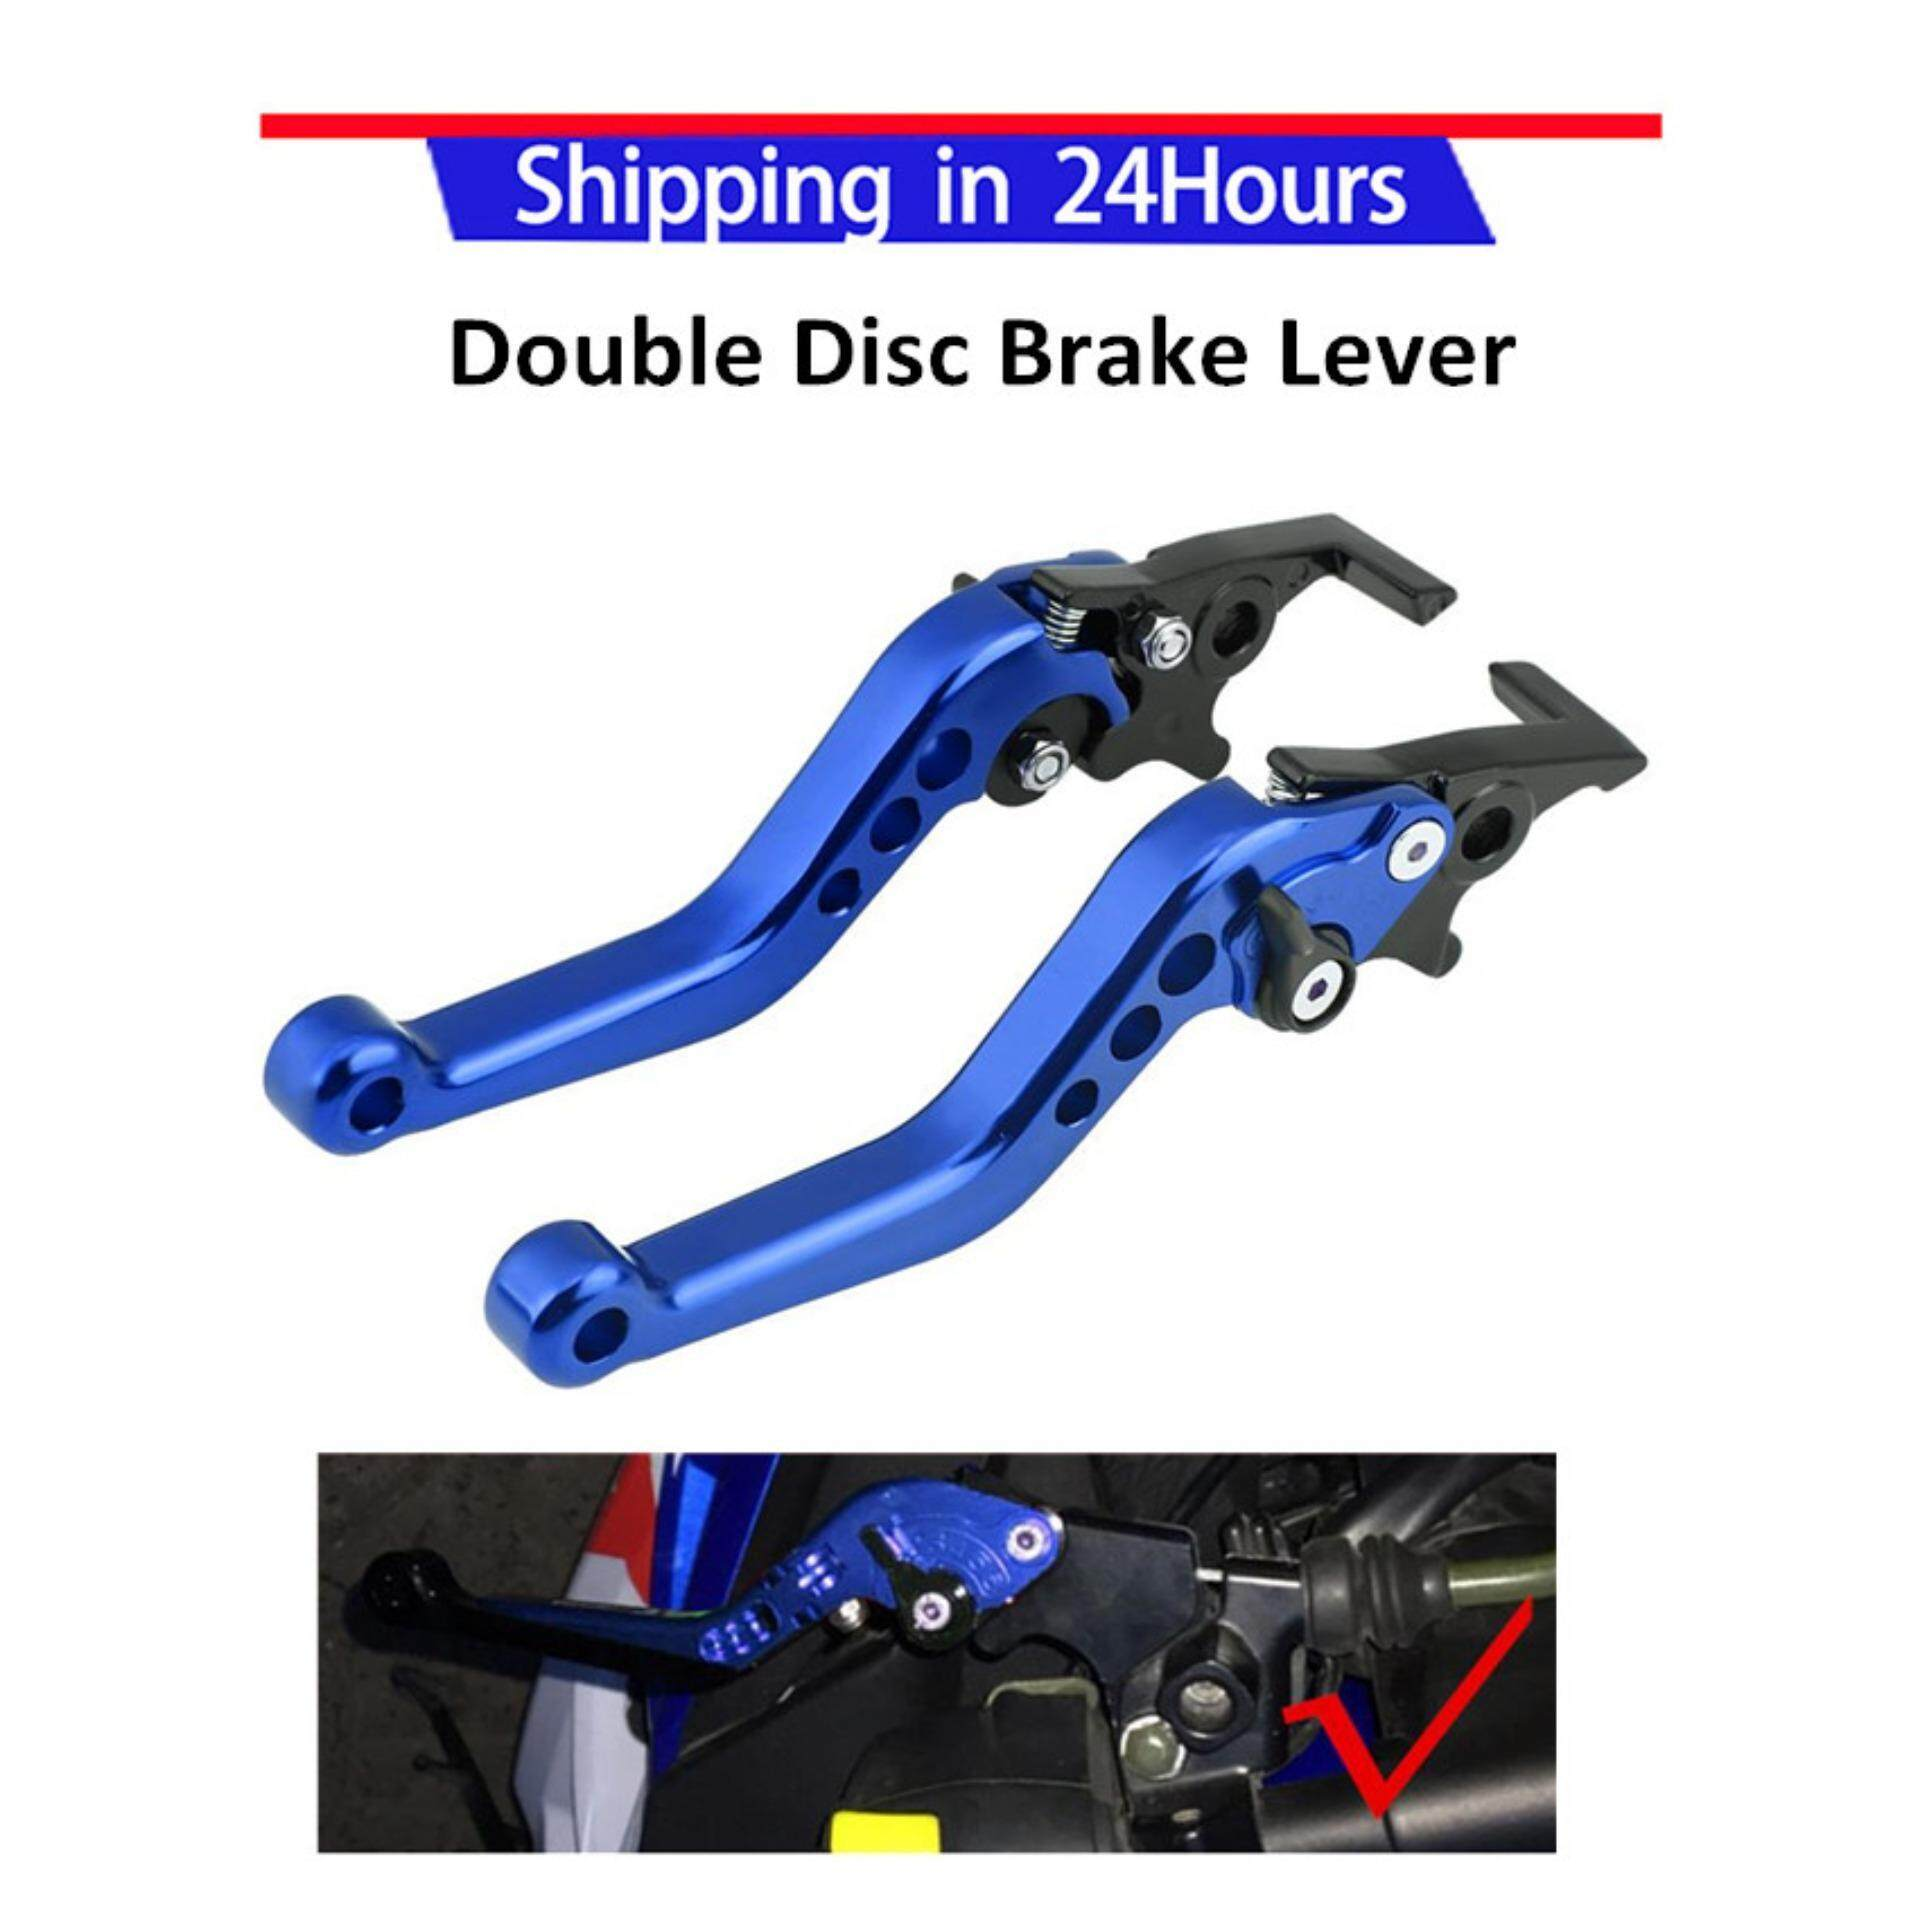 【20% Off】1 Pair Cnc Aluminum Motorcycle Scooter Modification Double Disc Brake Lever Universal Blue By Qilu.